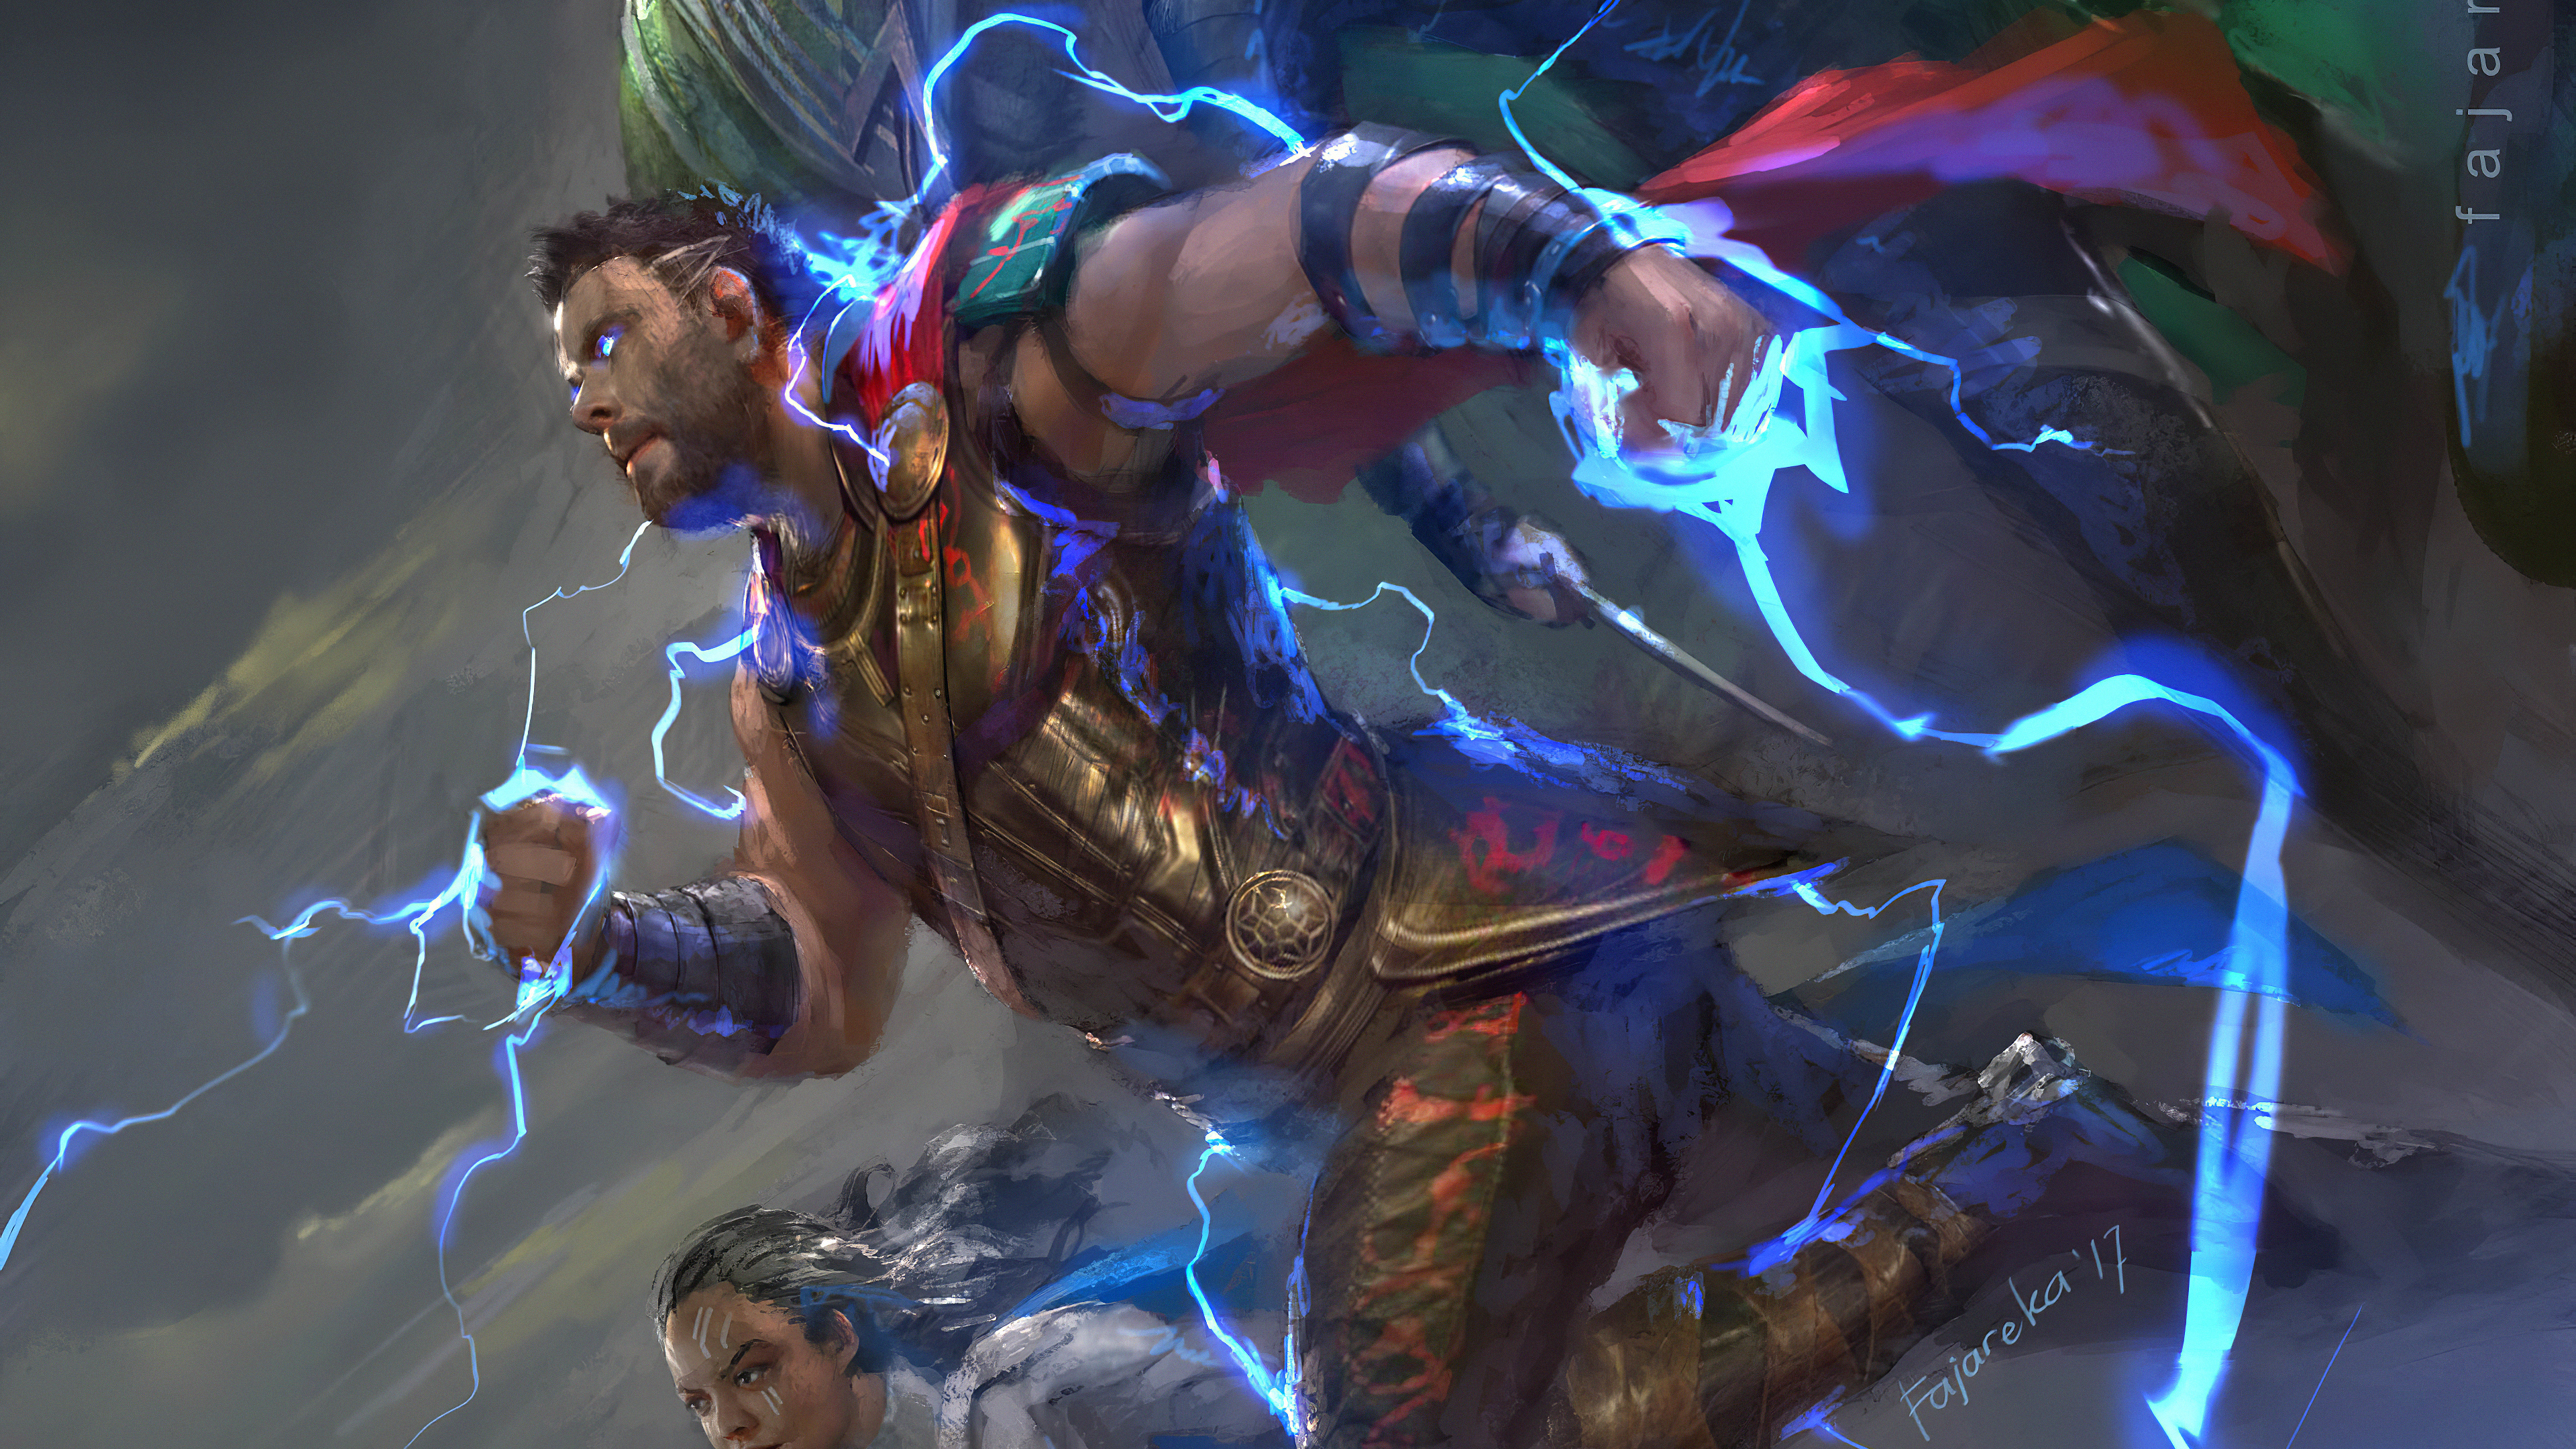 thor new 1572368606 - Thor New - thor wallpapers, superheroes wallpapers, hd-wallpapers, digital art wallpapers, artwork wallpapers, artstation wallpapers, 4k-wallpapers